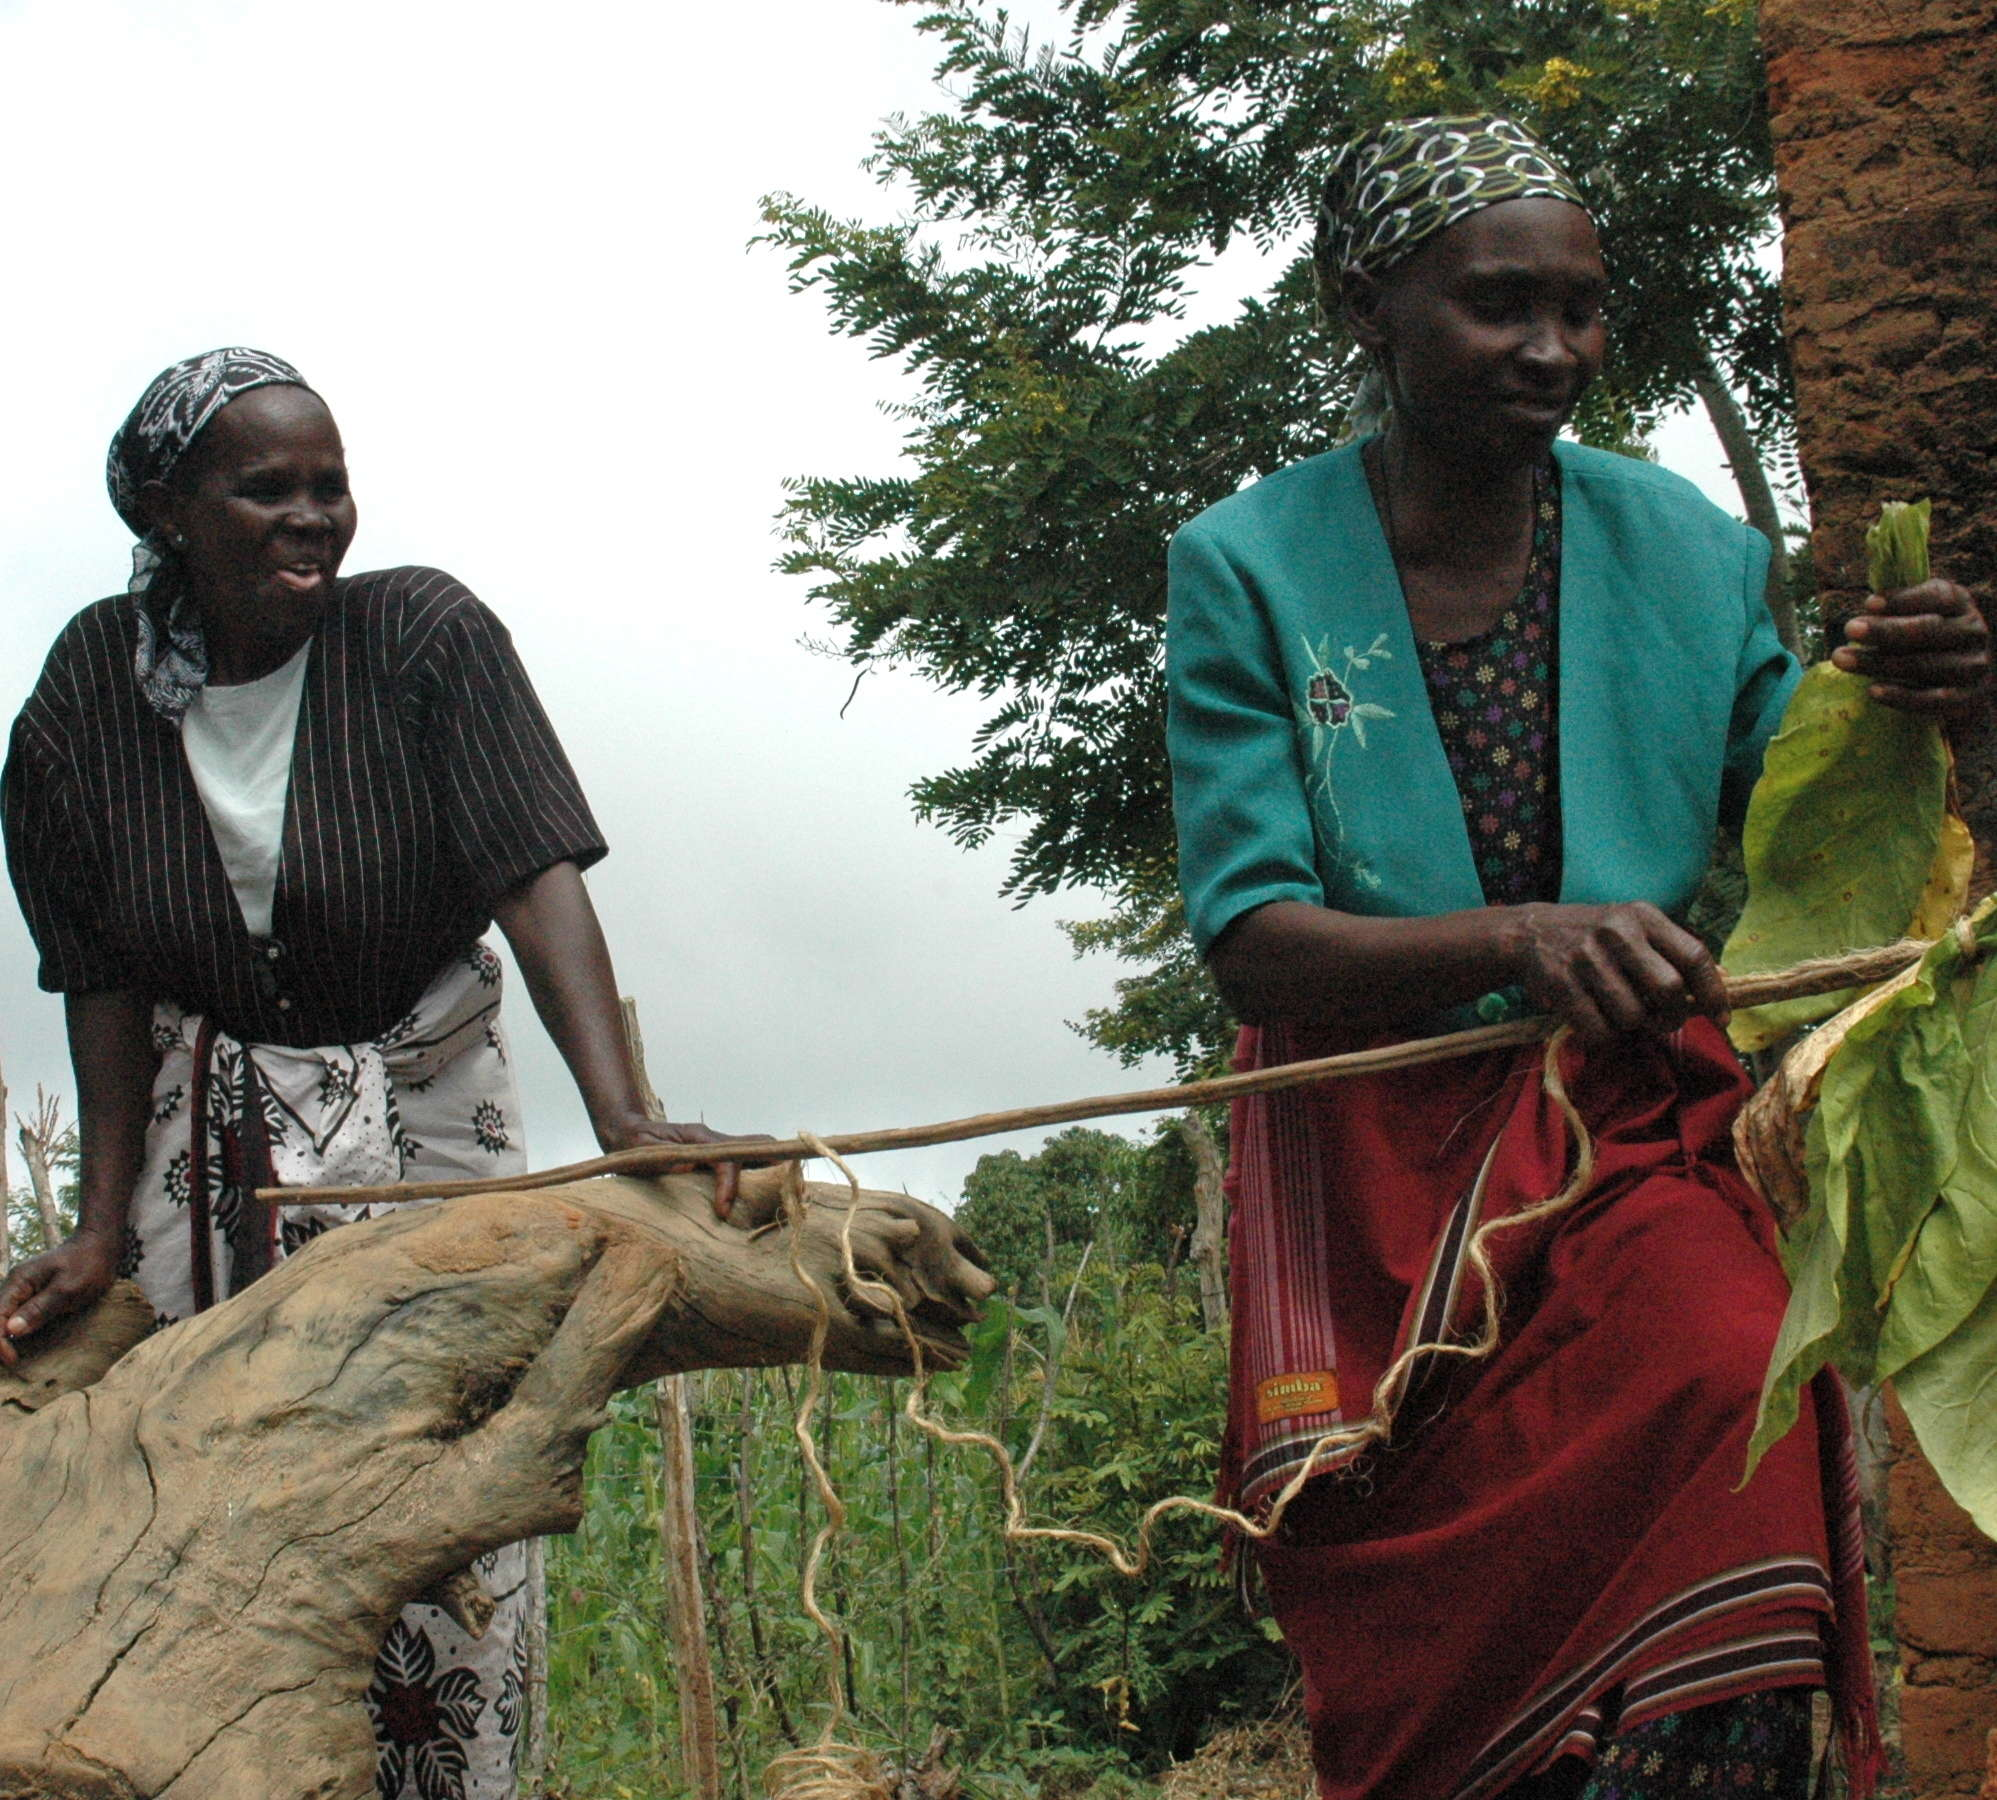 In Kenya, agricultural experts use low-tech methods to maximize yield and productivity. Photo GKI.